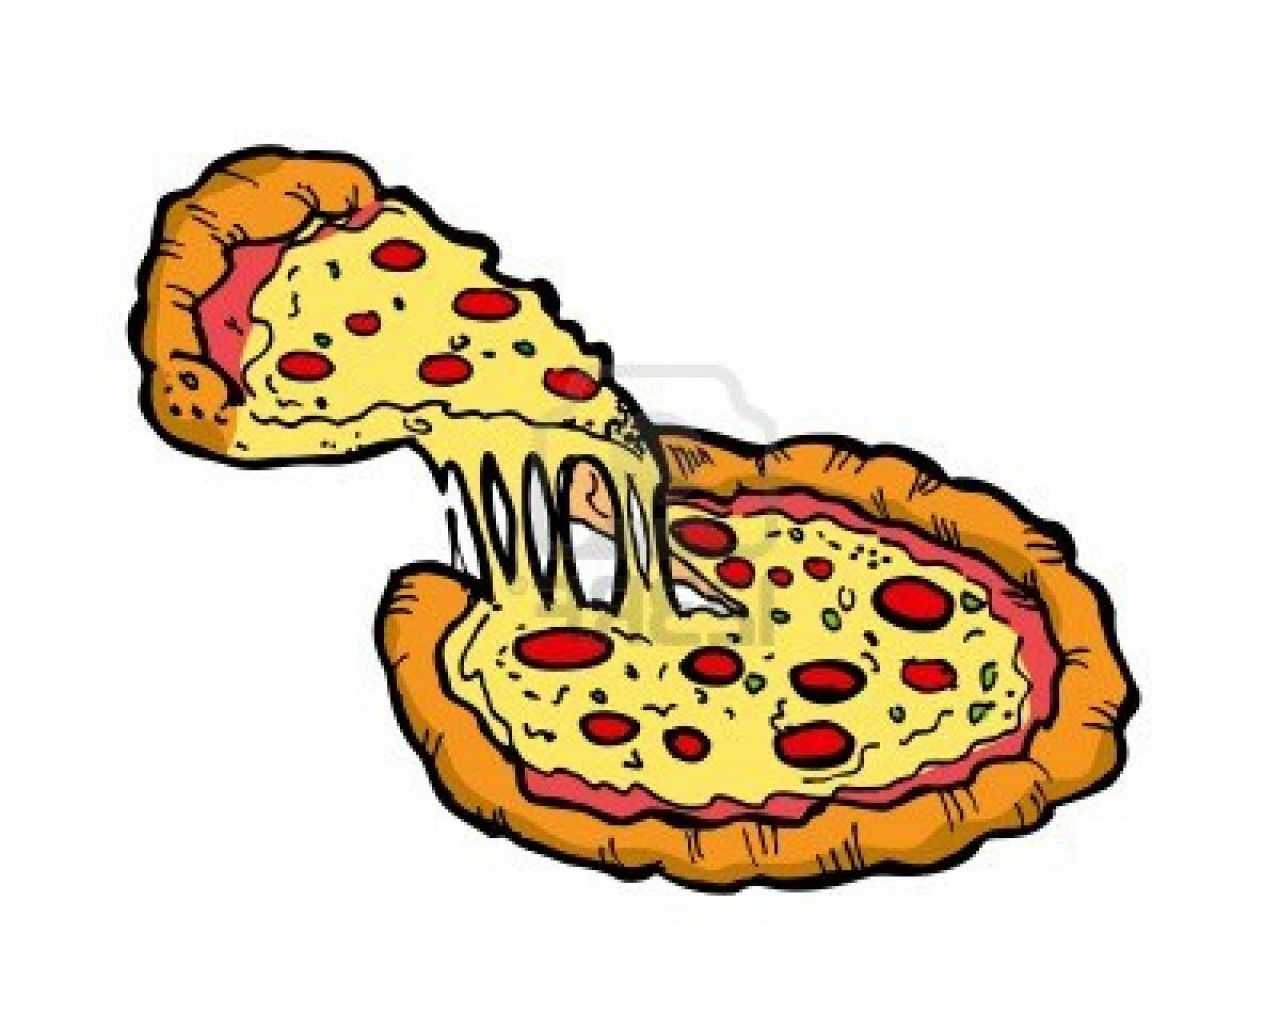 free pizza graphics clipart - photo #1